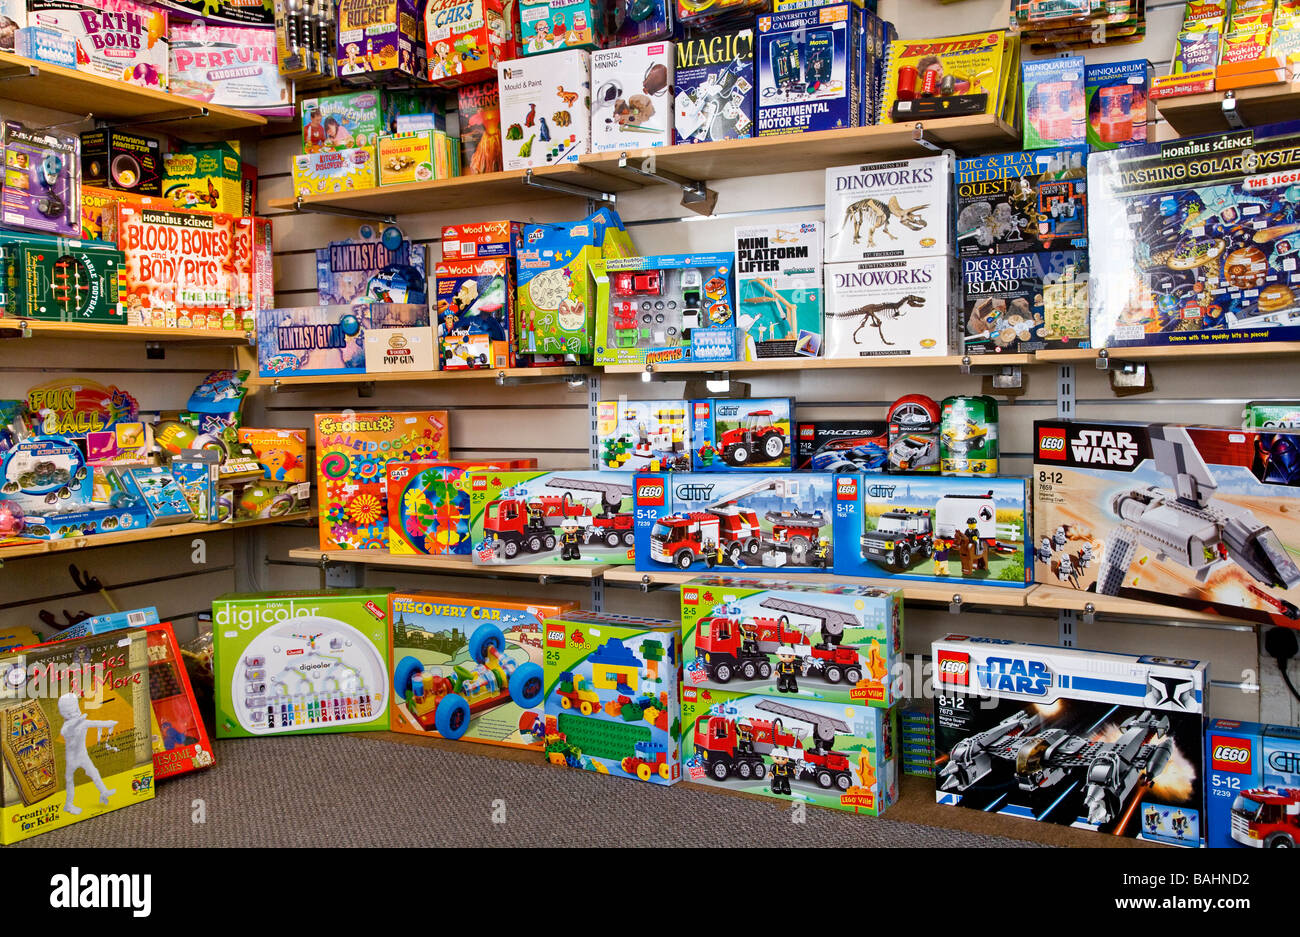 Toys The Game 27